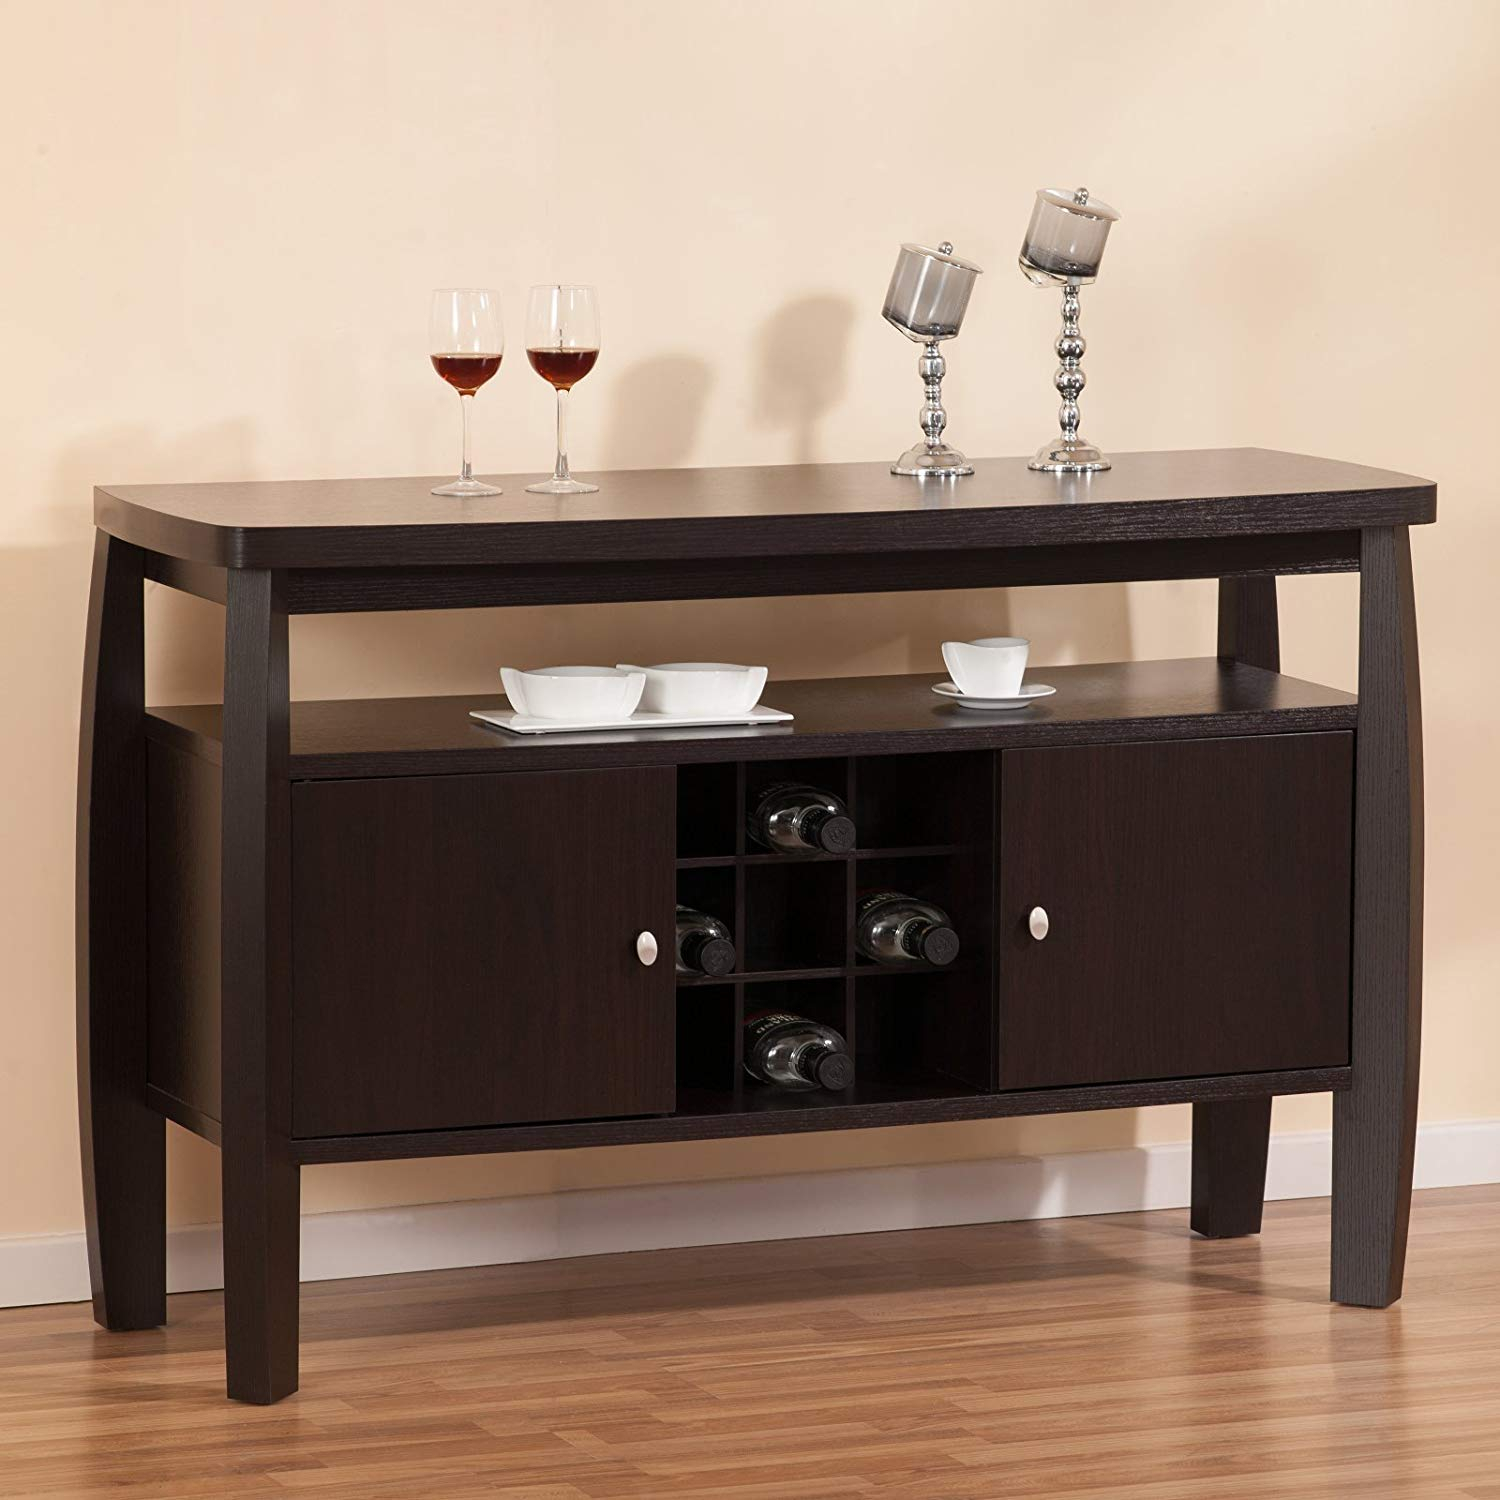 Cheap China Buffet Cabinets 208, Find China Buffet Cabinets intended for Simple Living Layla Black Buffets (Image 7 of 30)